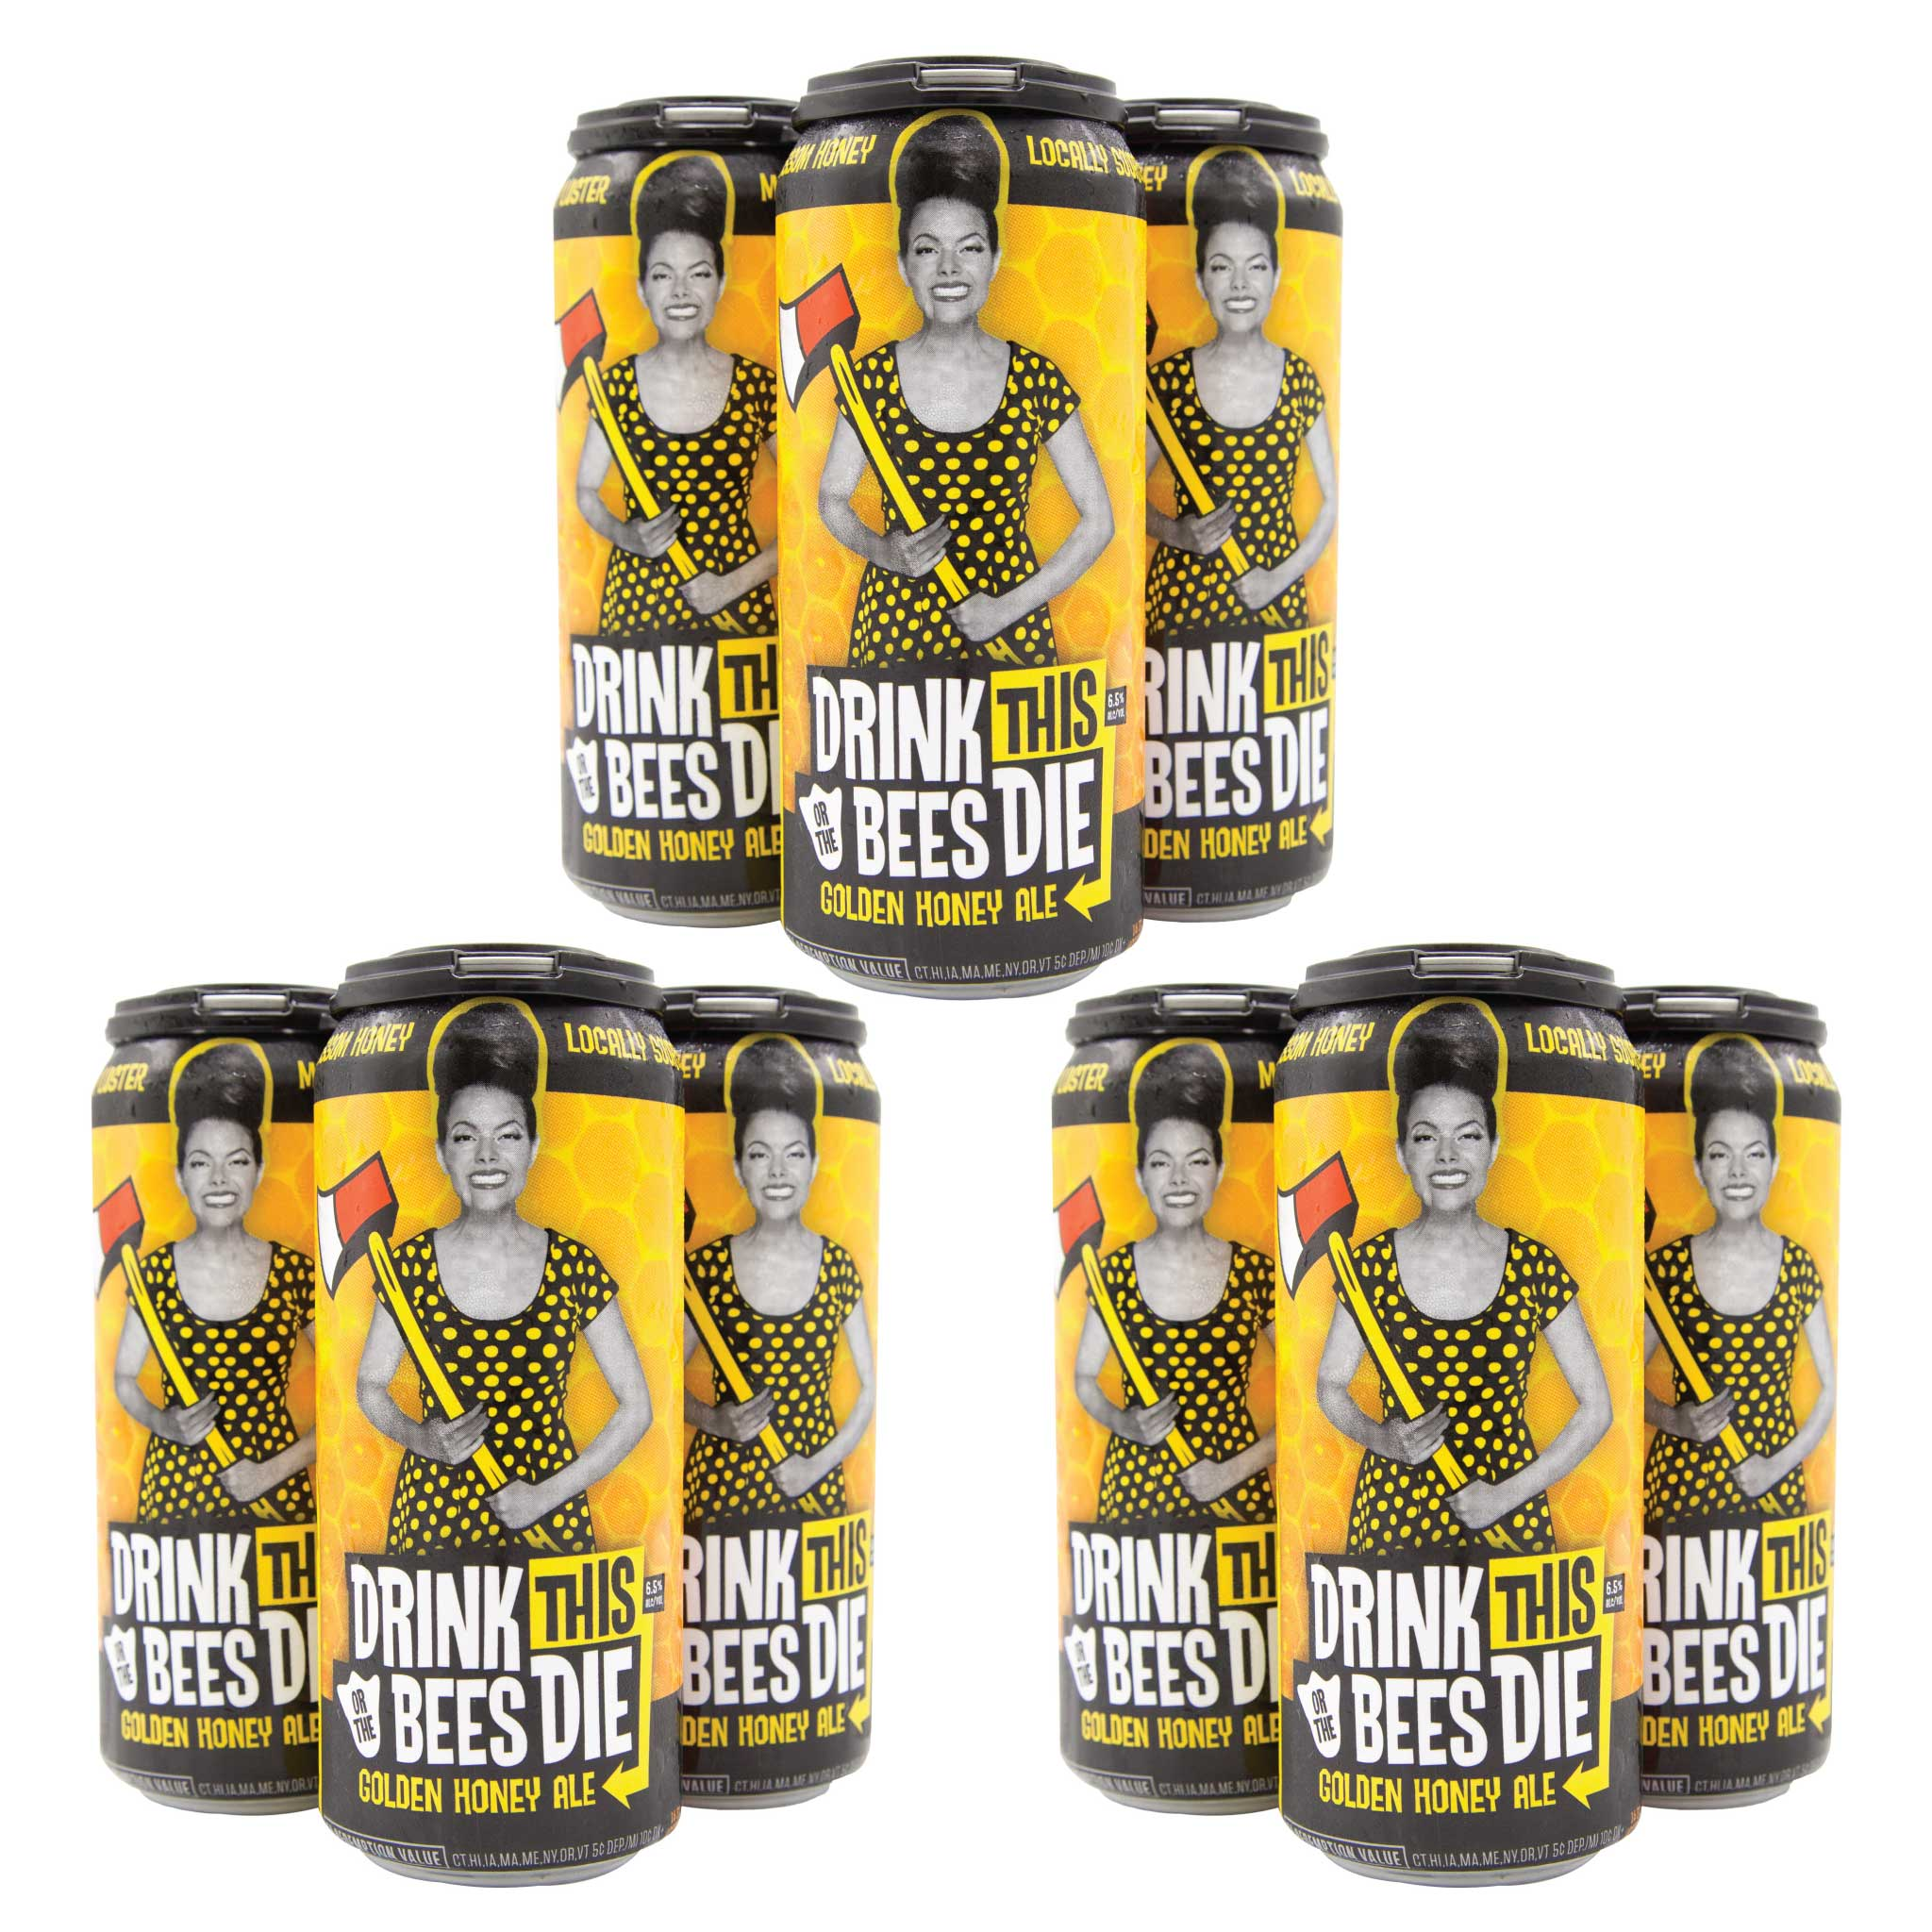 Drink This or the Bees Die (3 x 4 Packs of 16oz Cans) ** CA SHIPPING ONLY